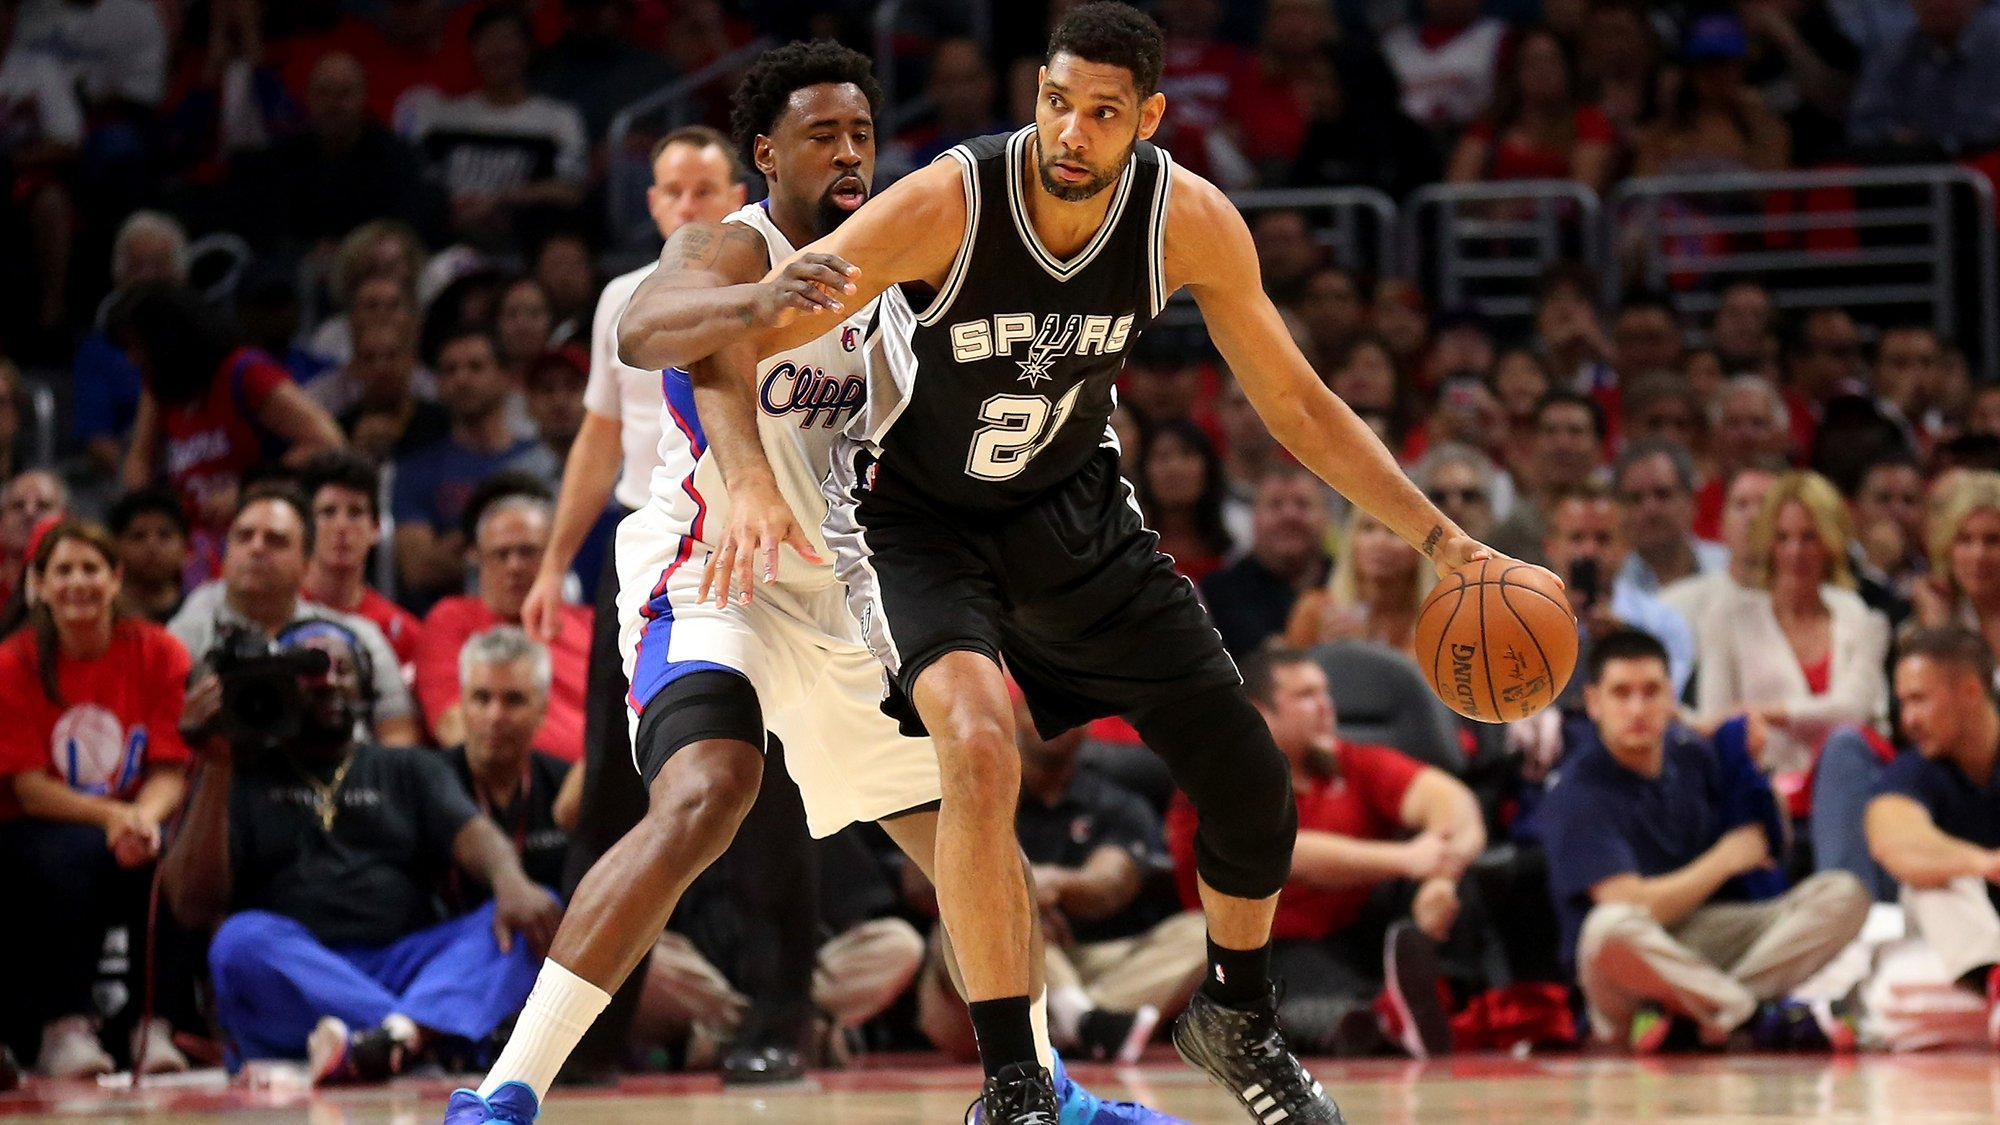 Tim Duncan returns to the NBA as a coach for the San Antonio Spurs